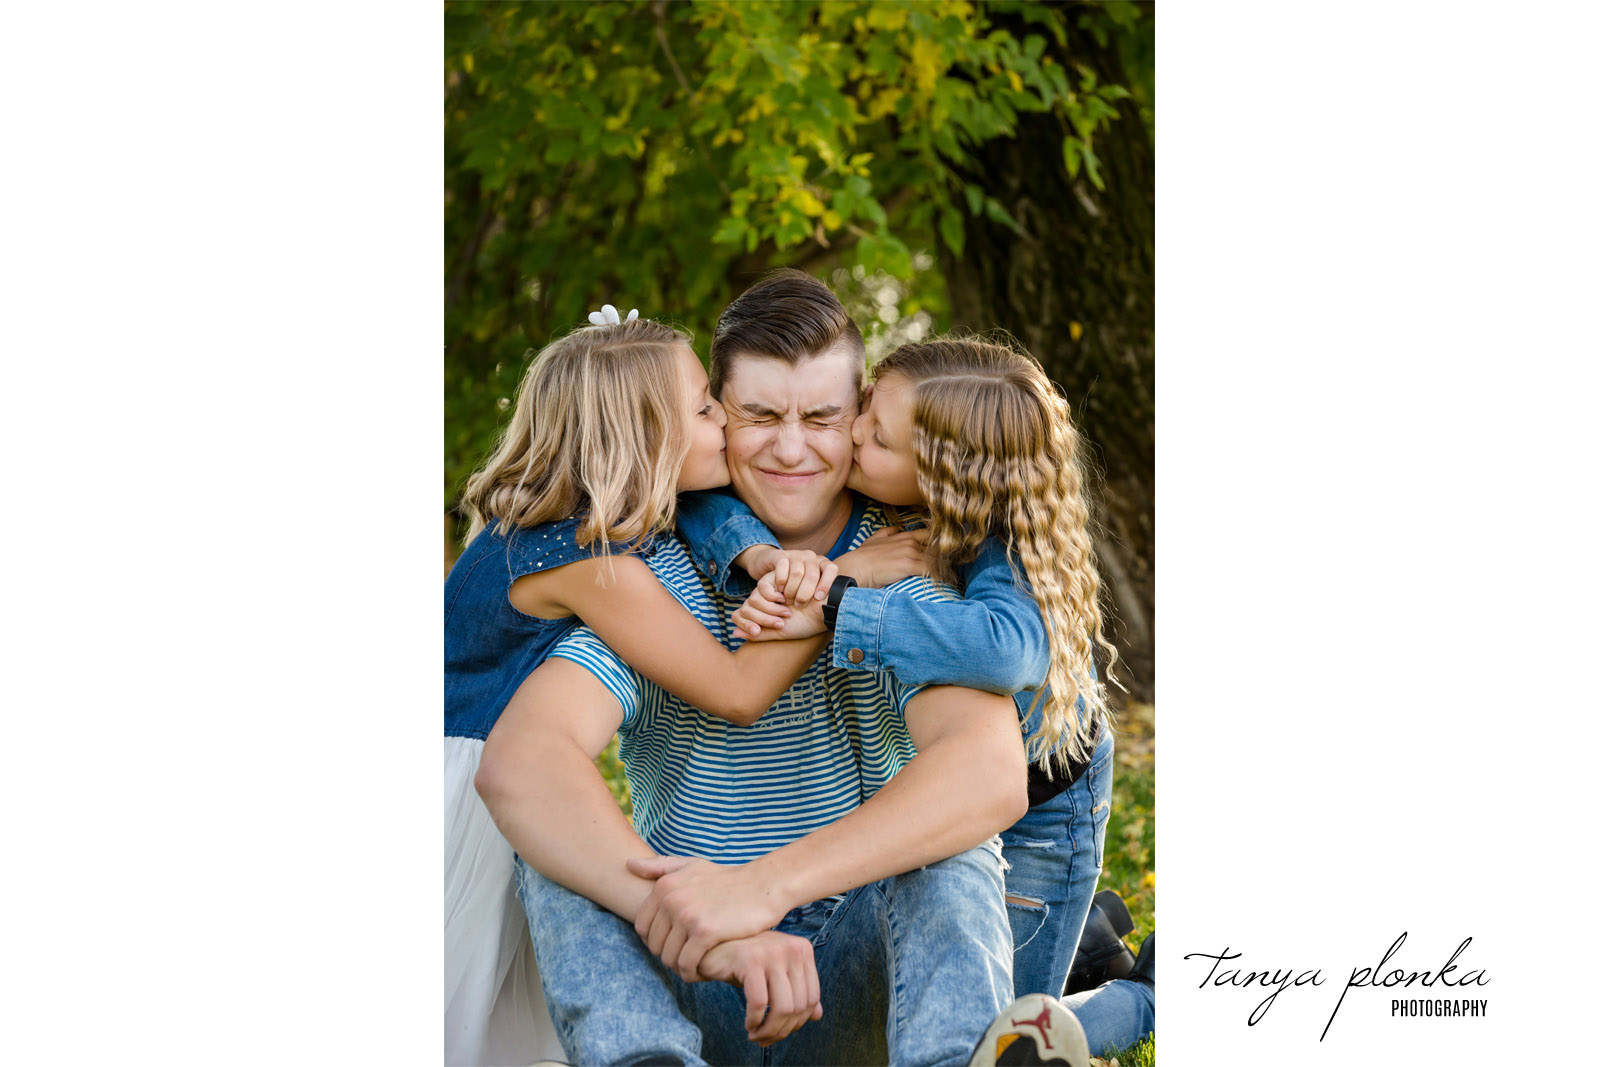 Funny photo of sisters kissing brother's cheeks